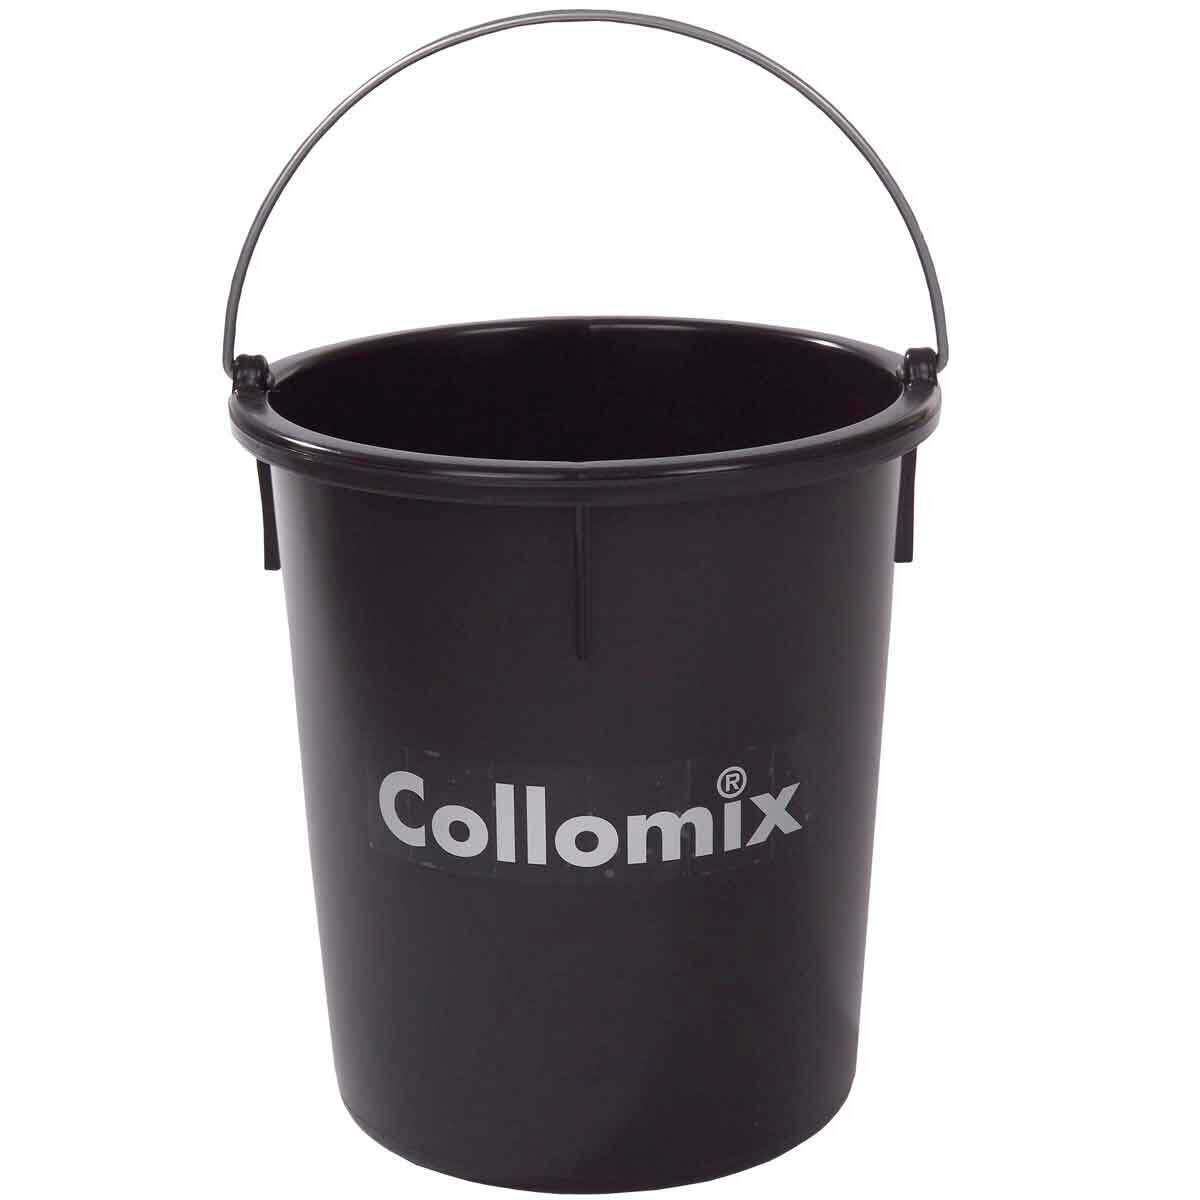 Collomix 8 Gallon Bucket, concrete, epoxy-based mortar, cement screed, grout, polymer-modified mortar, 2-component grouting compounds, self-leveling underlayments, concrete restoration